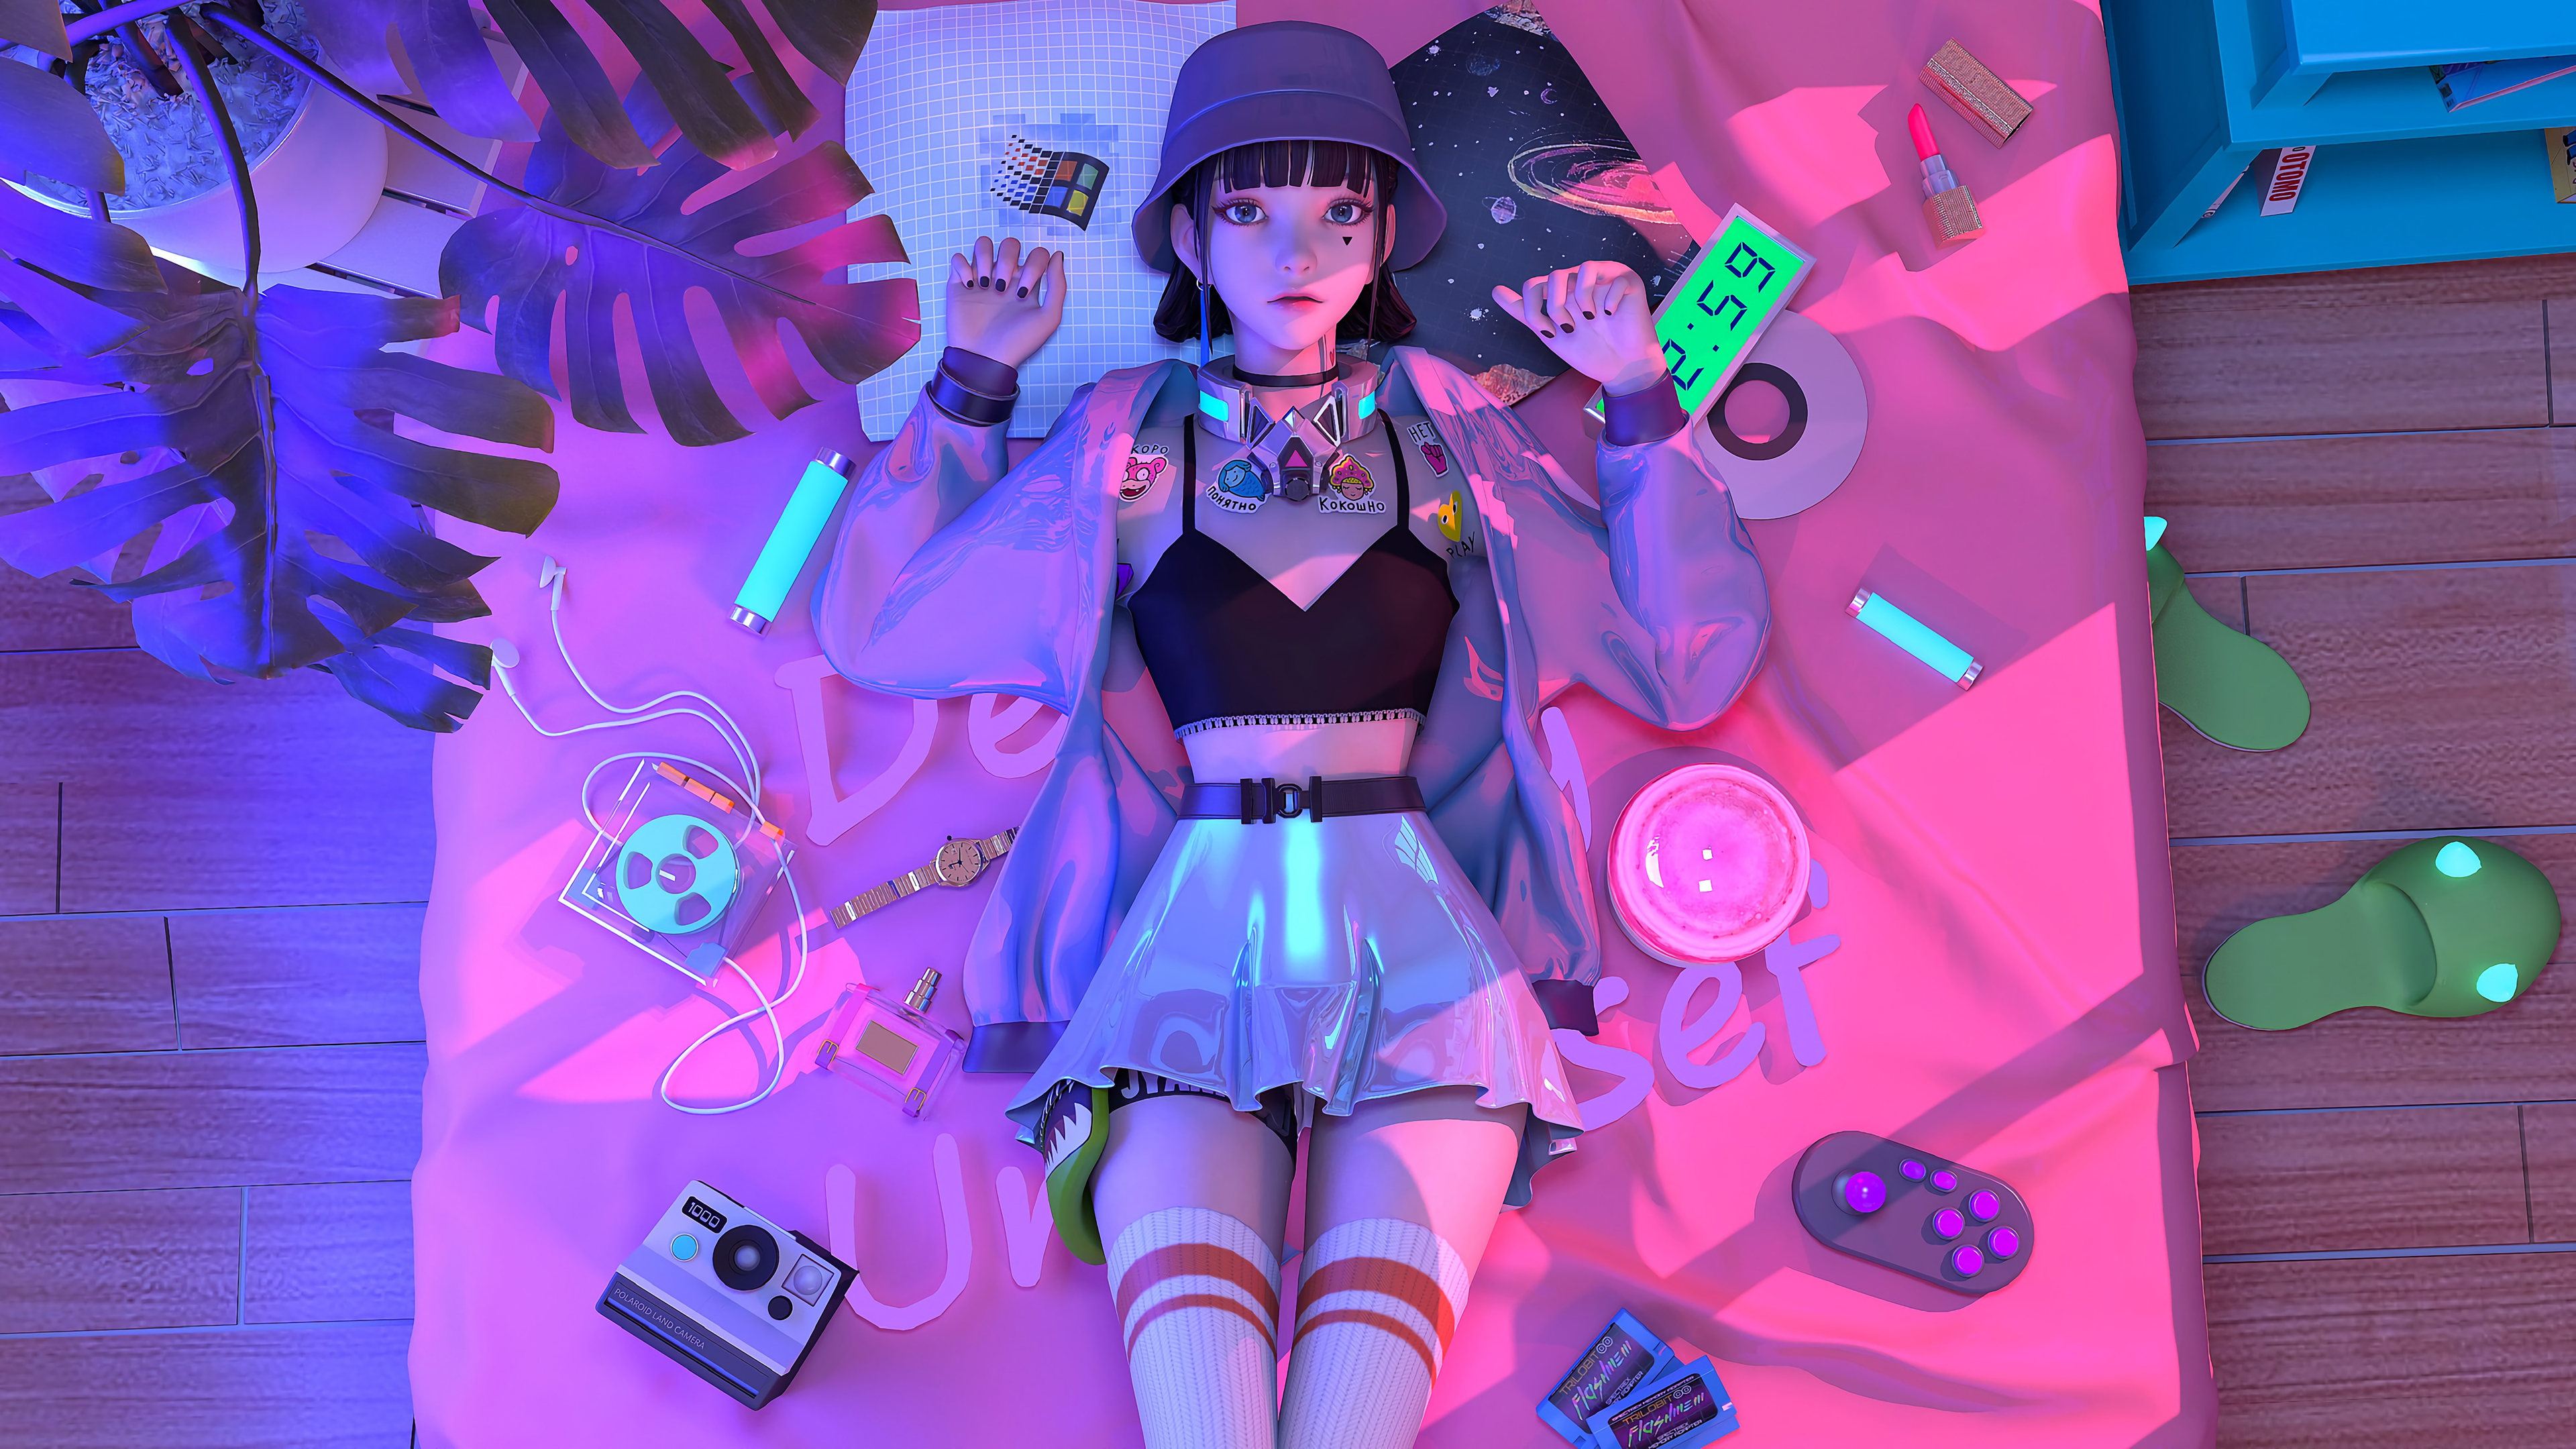 General 3840x2160 anime girls women lying on back looking up looking at viewer women indoors indoors hat women with hats Polaroid wristwatch dark hair anime interior room in bed windows logo